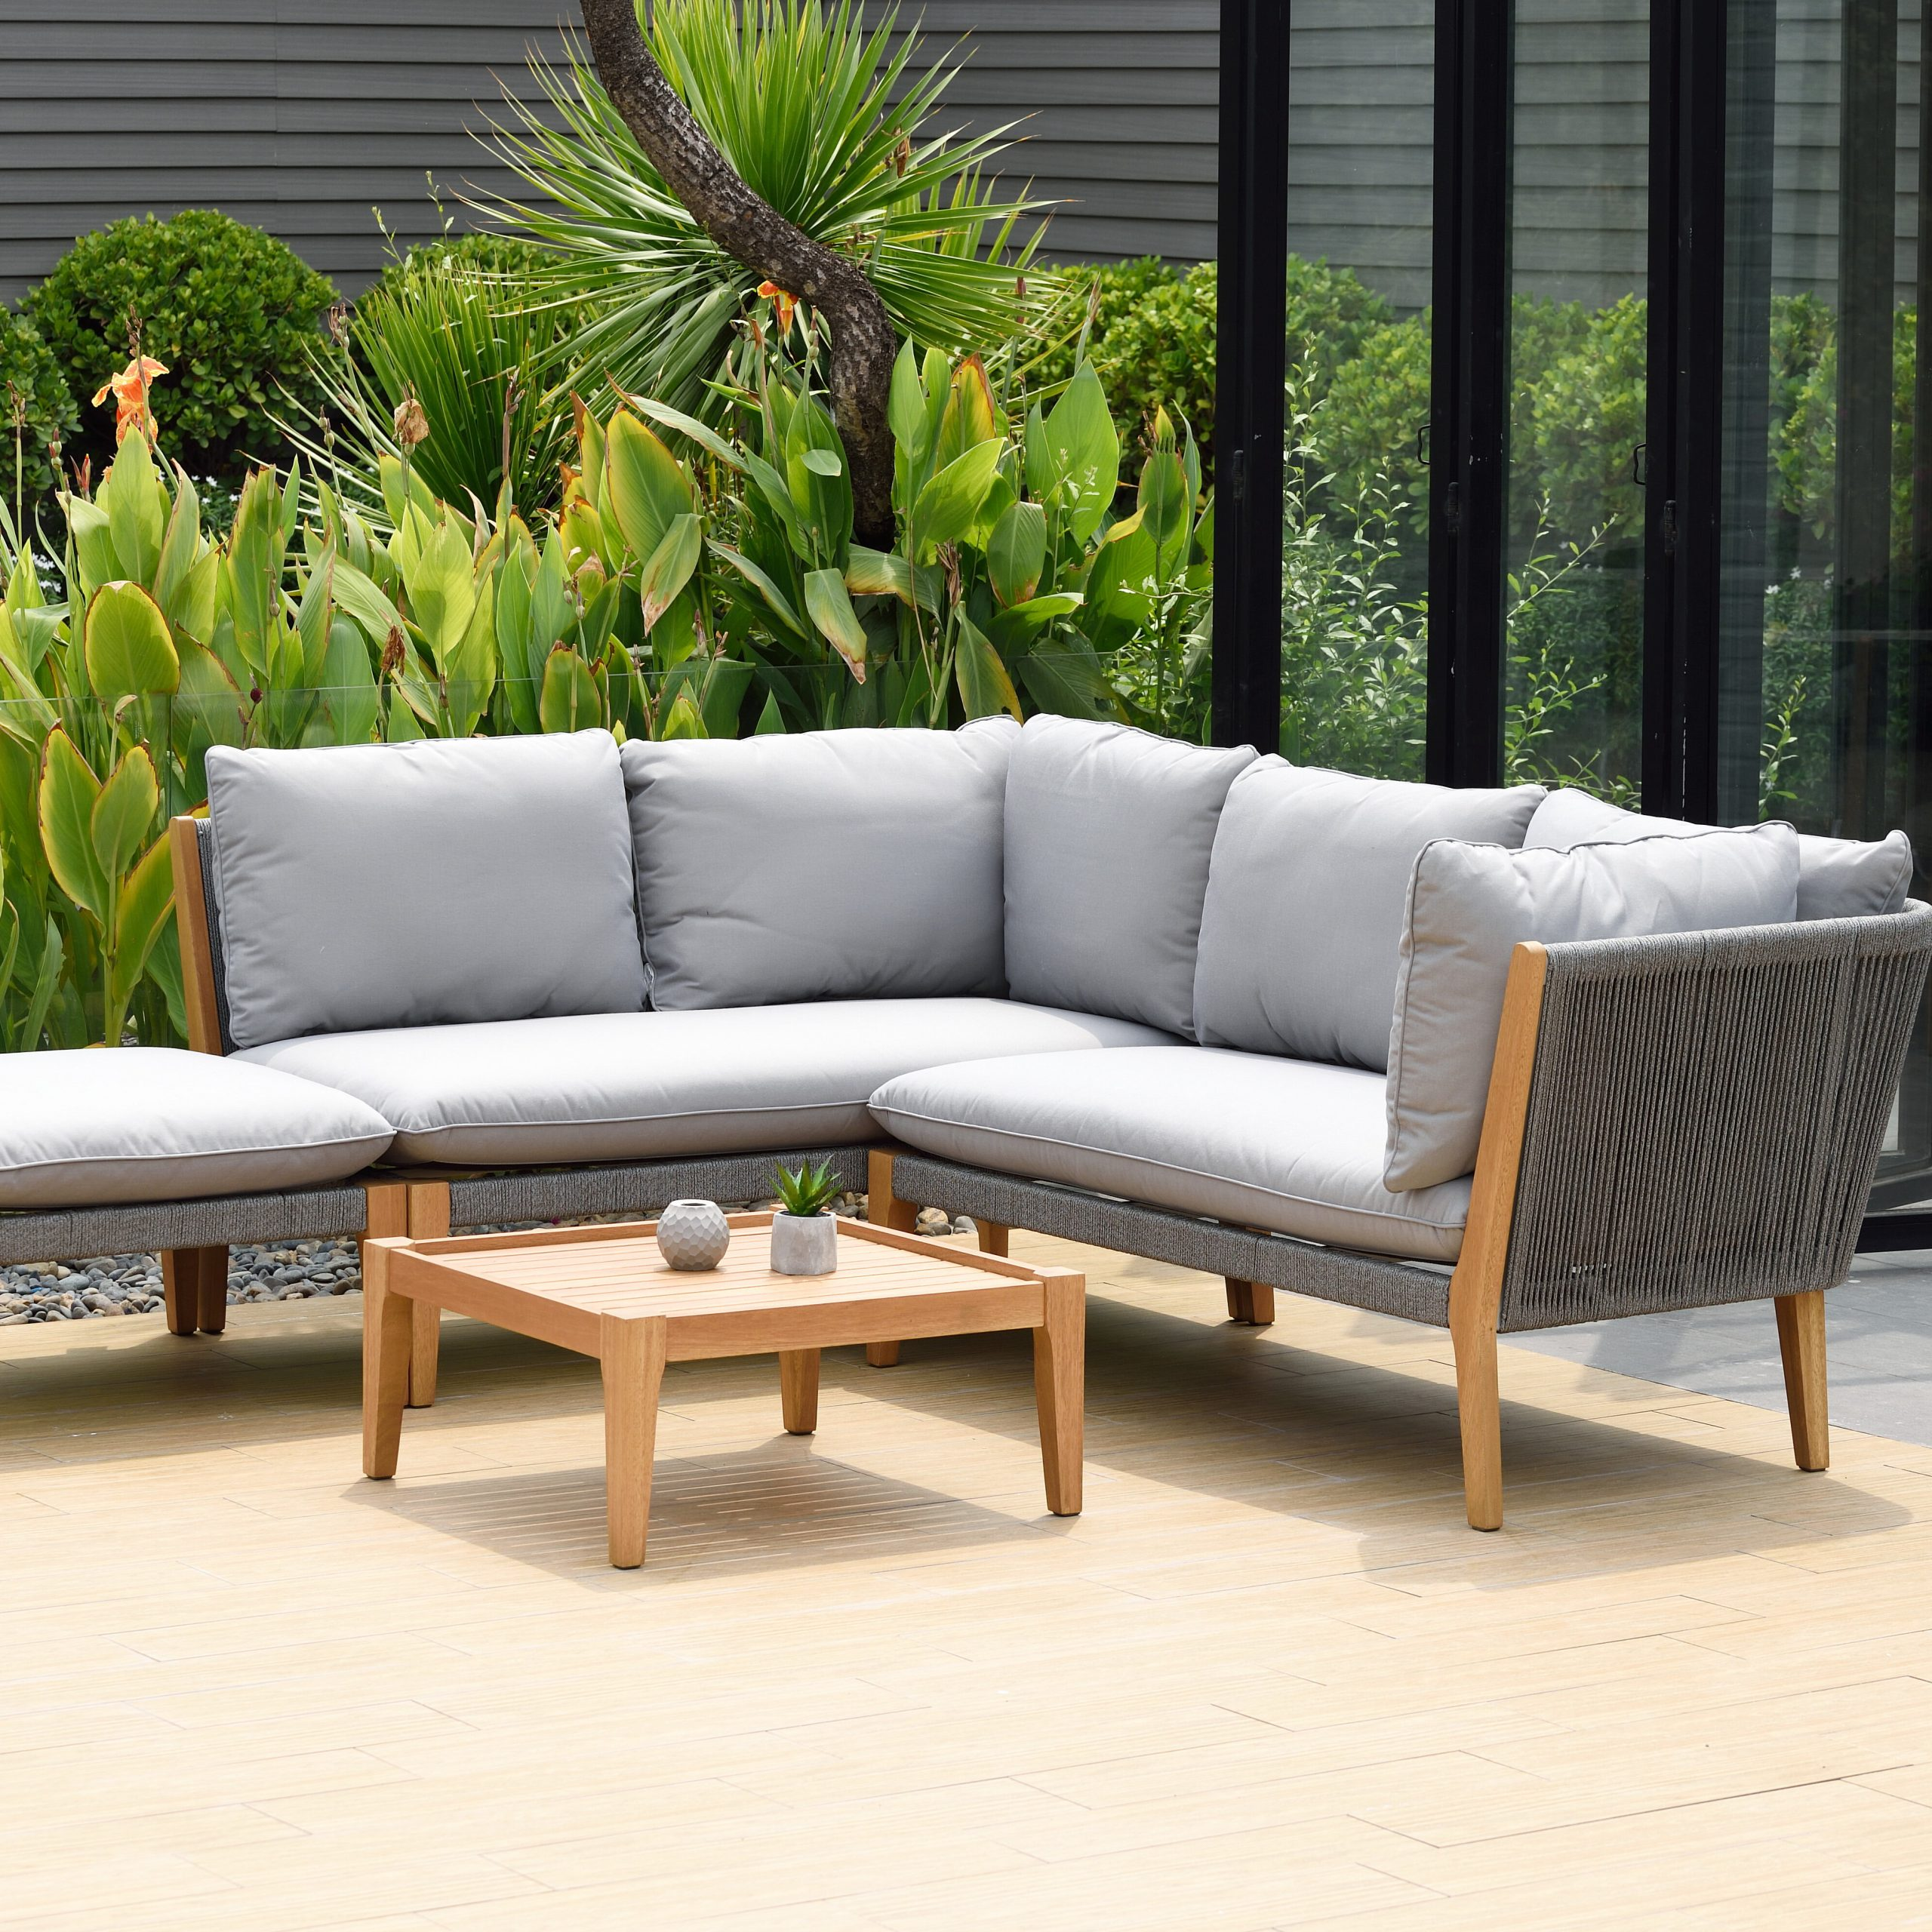 2020 Olinda 4 Piece Teak Sectionals Seating Group With Cushions Intended For Olinda 4 Piece Teak Sectional Seating Group With Cushions (View 5 of 25)